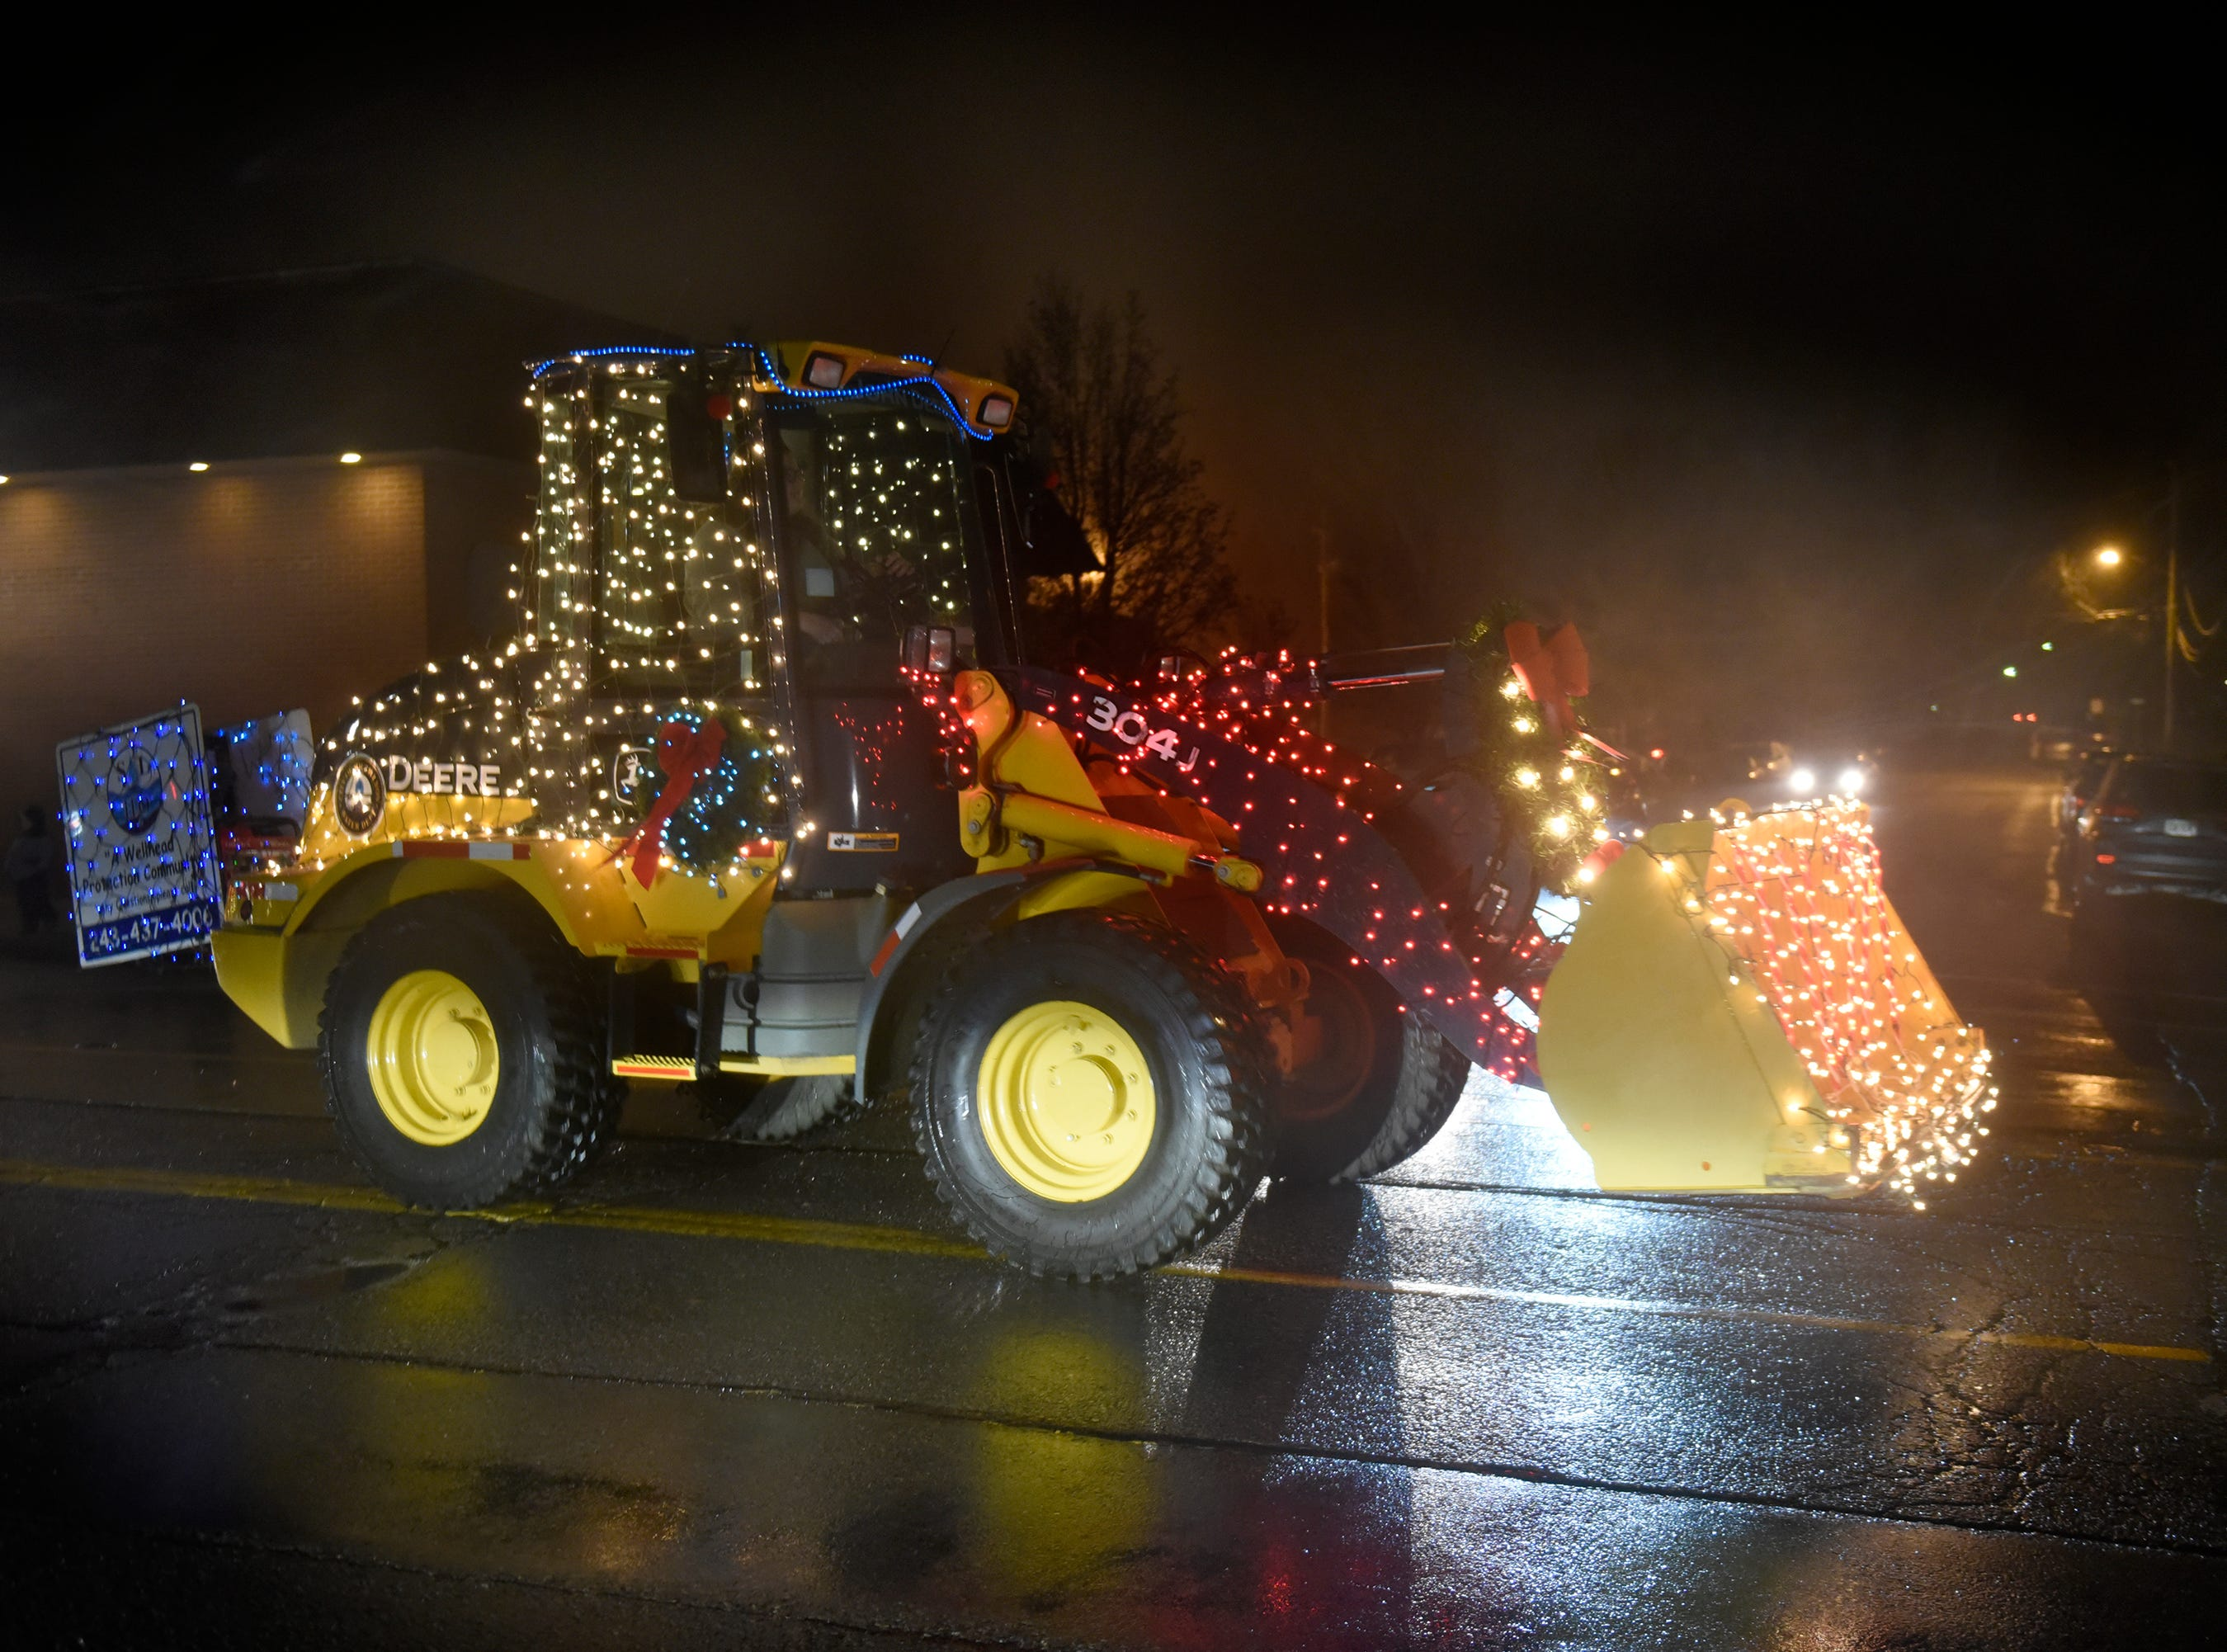 No parade is complete without big trucks. The Lighted Parade during South Lyon's Cool Yule celebration Dec. 1, 2018.